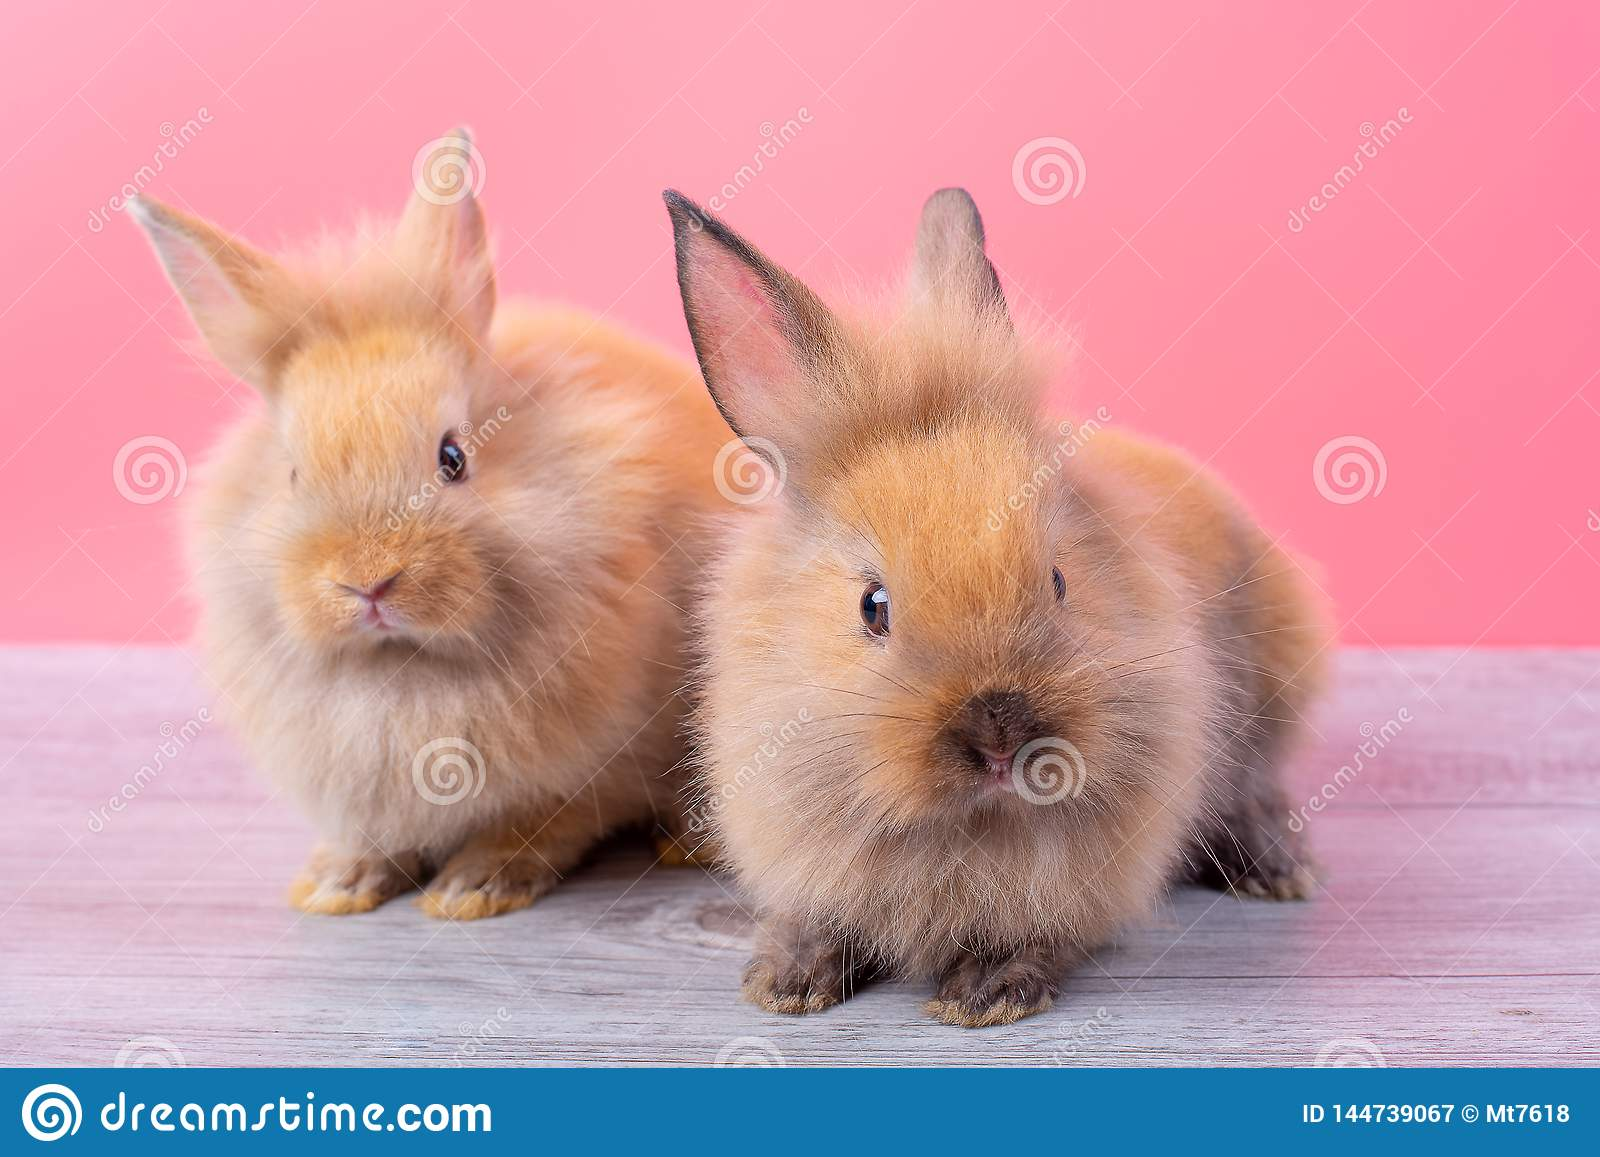 Couple small light brown cute bunny rabbits stay on gray wood table with pink background